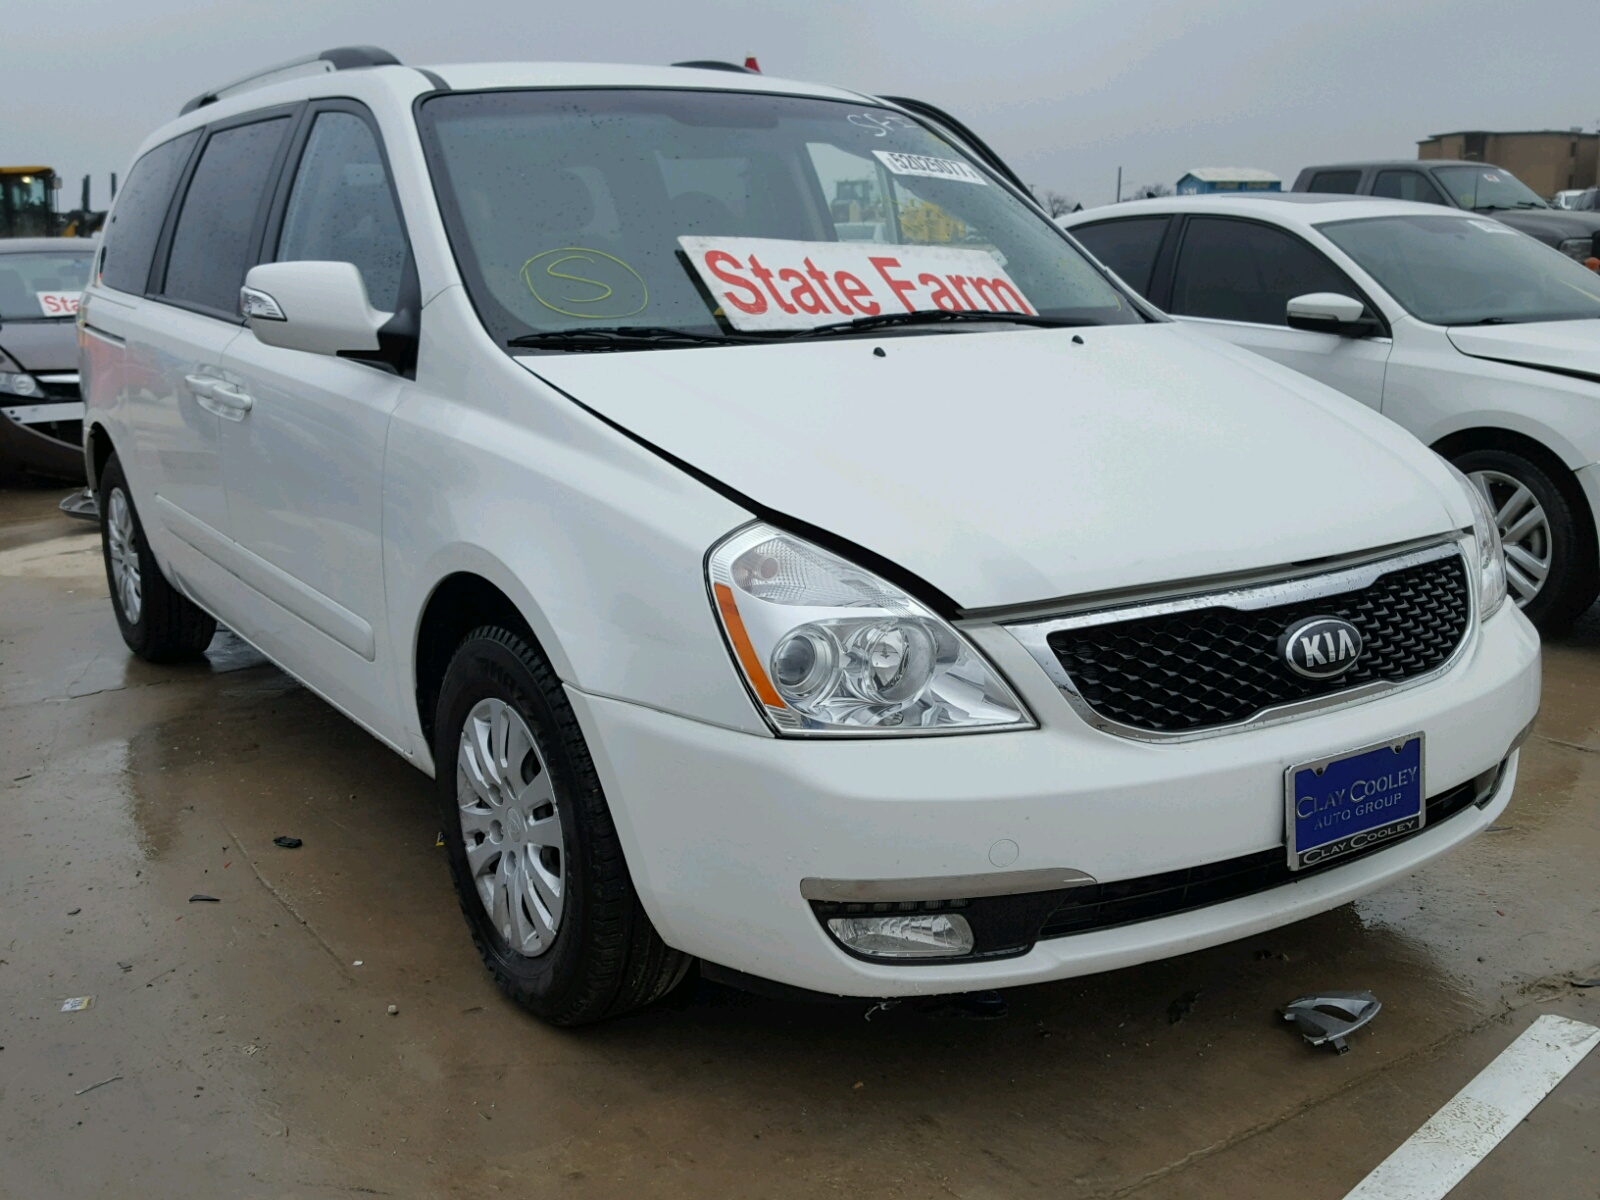 gray kia tx copart sorento on left sale dallas carfinder auto en view lot title ba online vehicle in salvage auctions